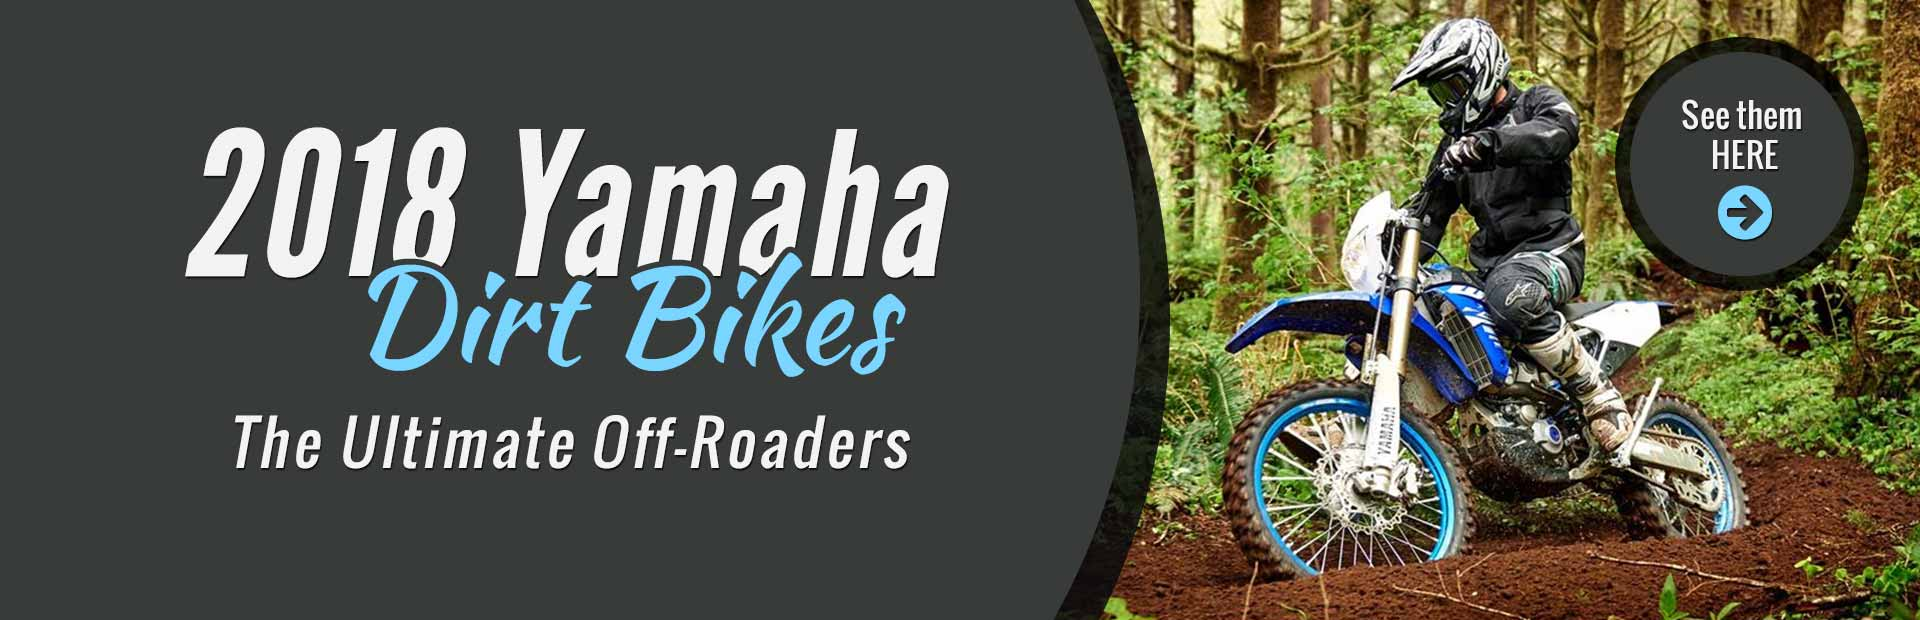 2018 Yamaha Dirt Bikes: Click here to view the models.